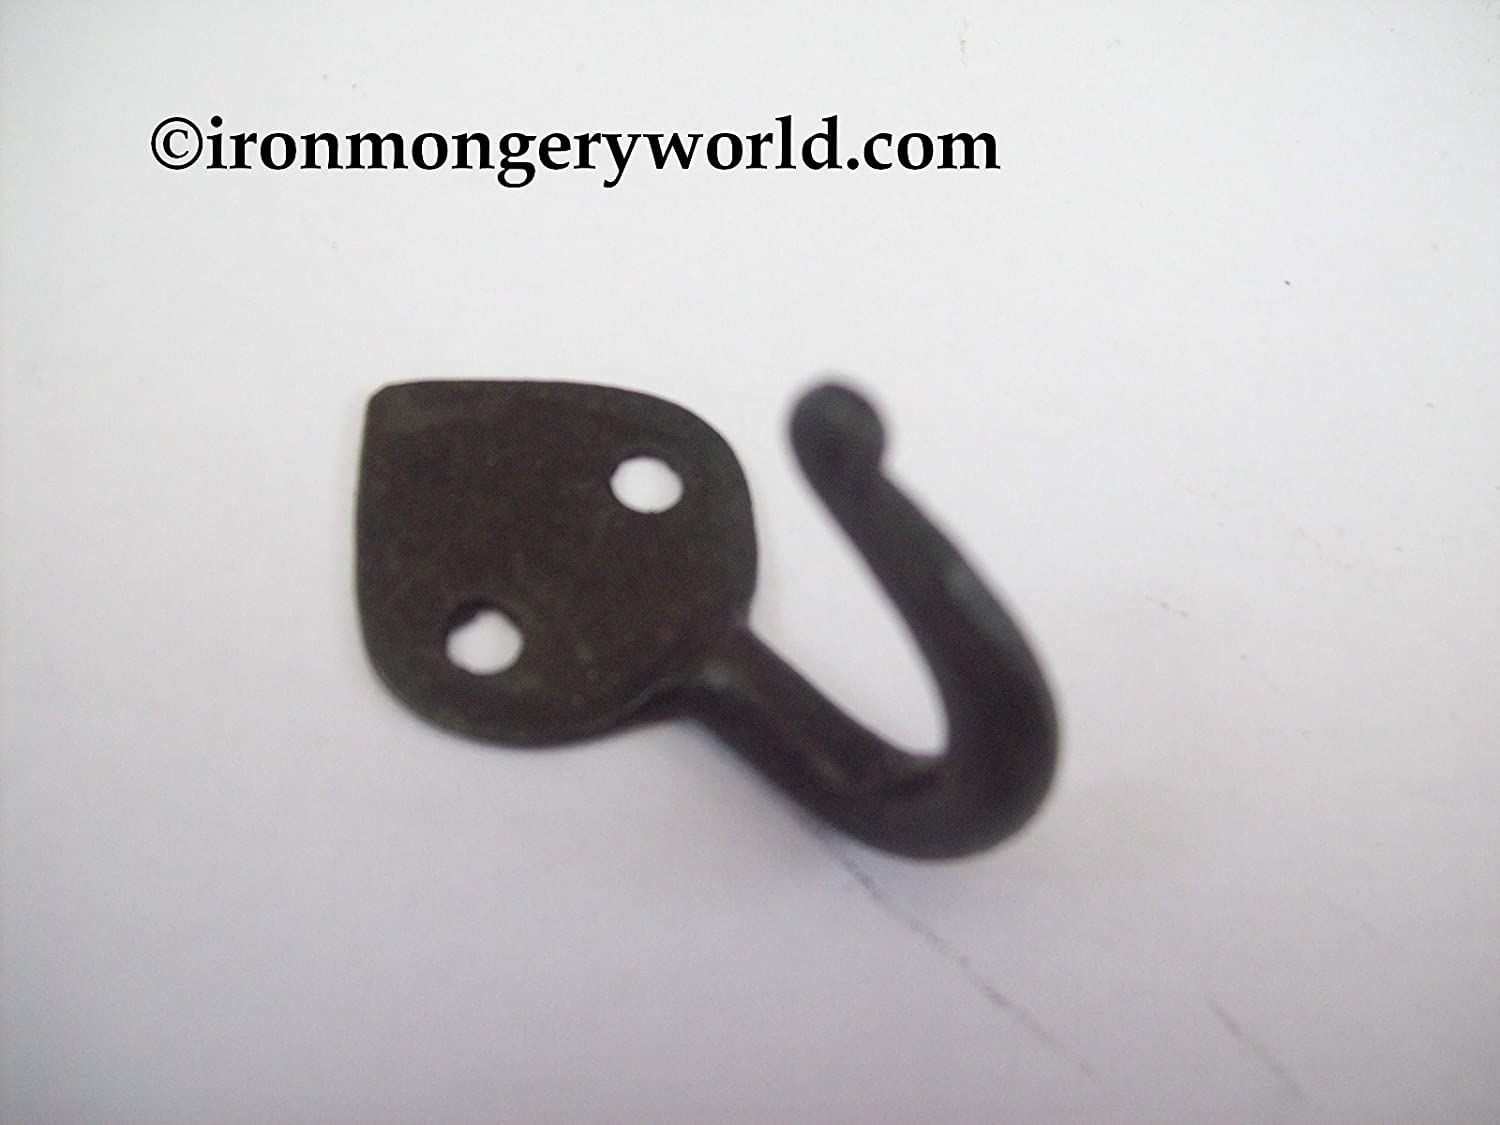 ironmongery world hand forged made wrought iron gothic hat coat ironmongery world hand forged made wrought iron gothic hat coat key robe hooks blacksmith beeswax in 11 options small 40mm leaf end black wax finish